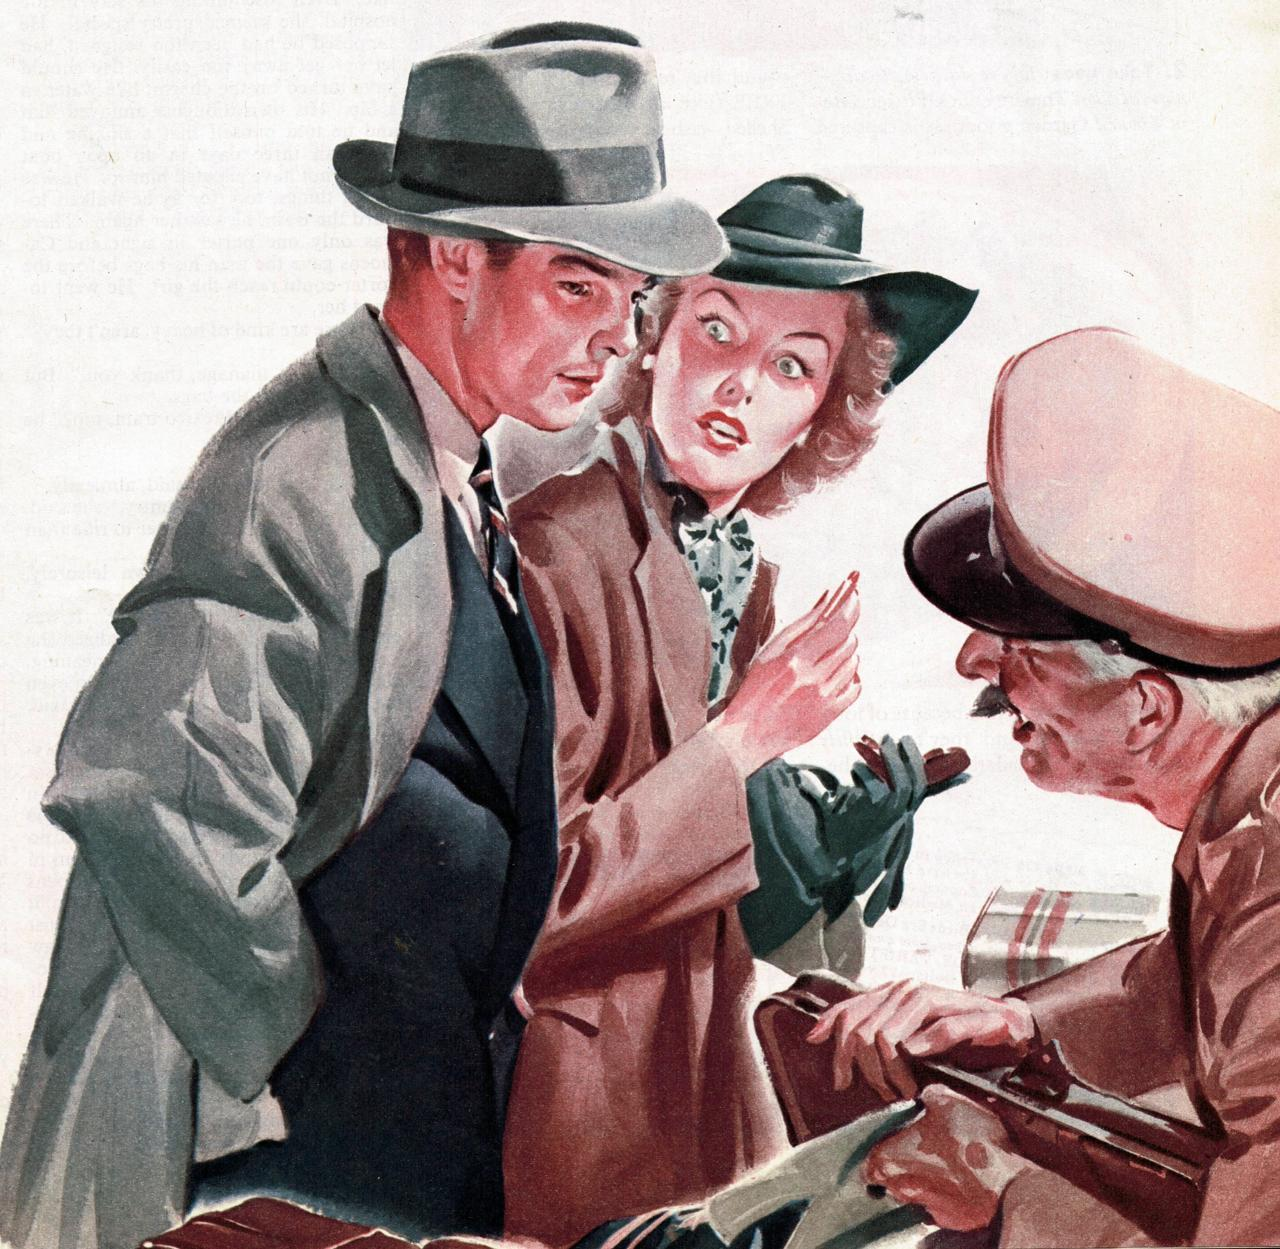 Story illustration by Elmore Brown, for Collier's magazine; March 13, 1943